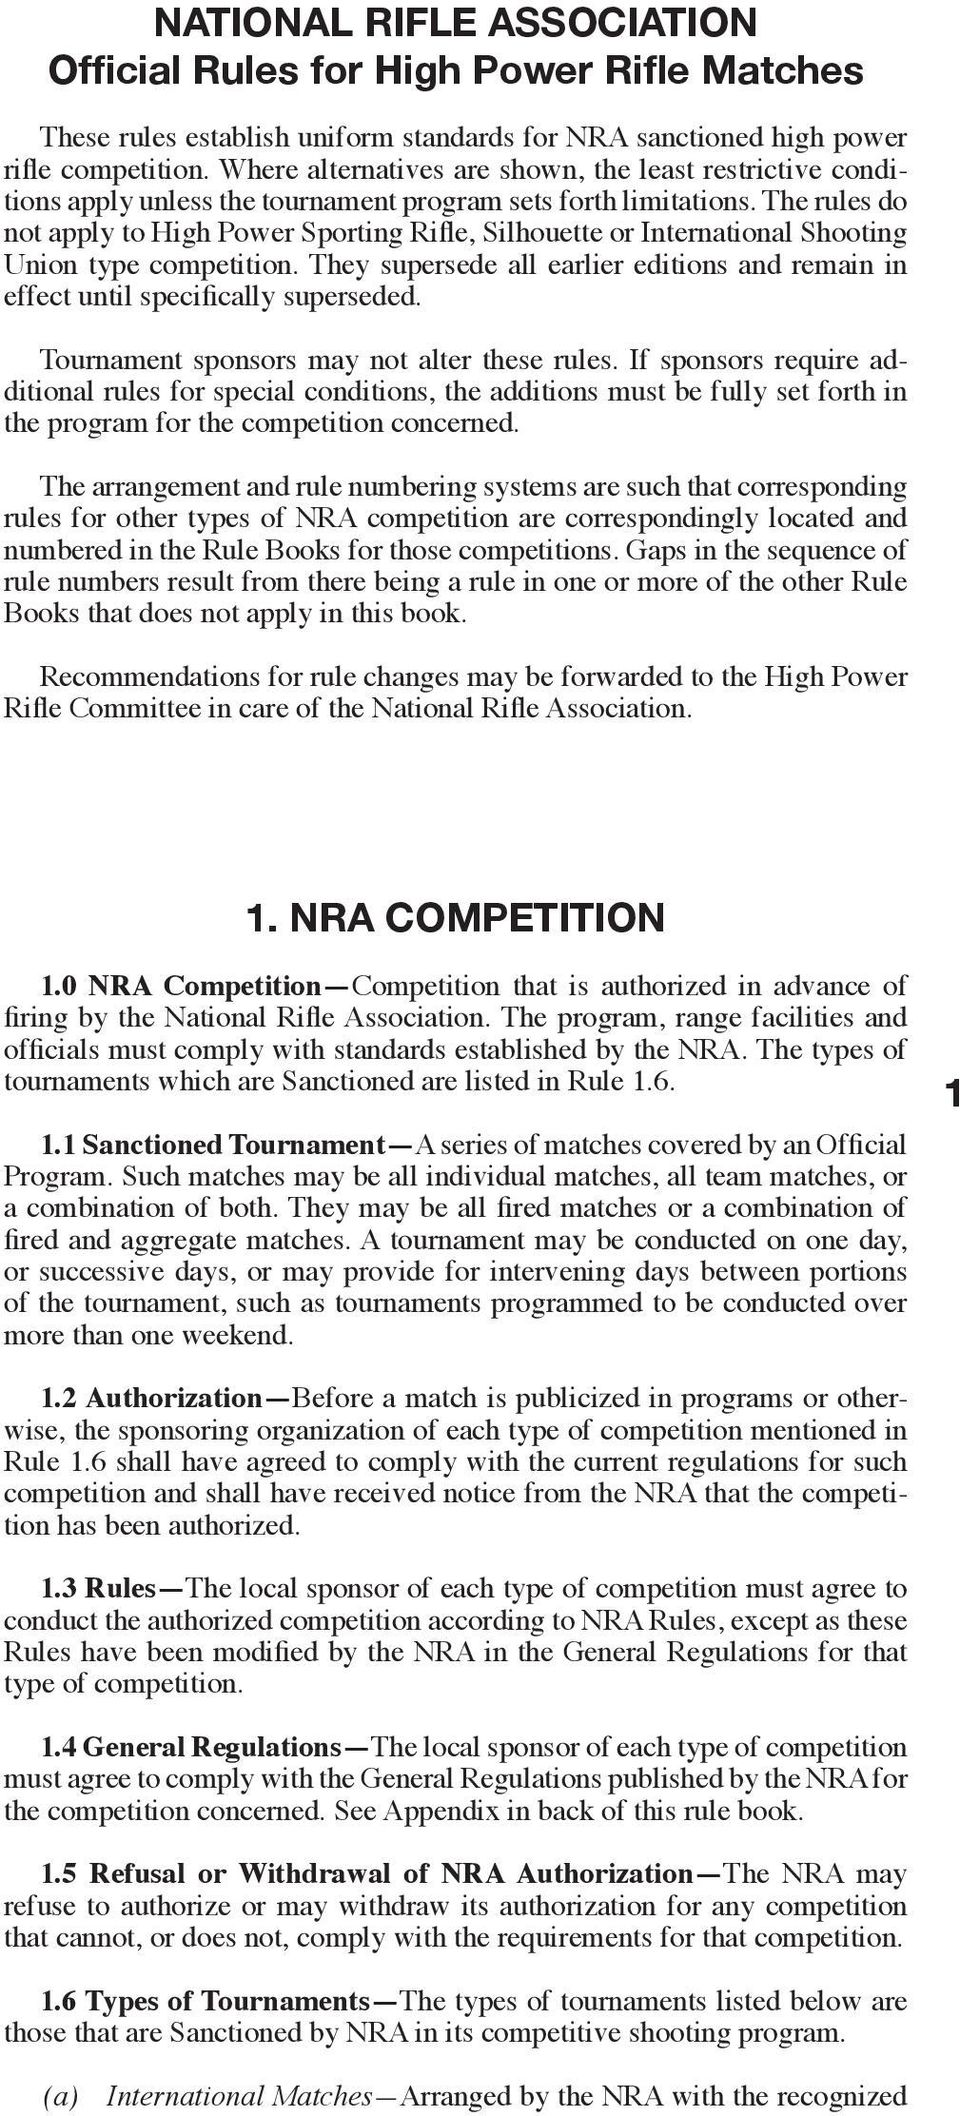 The rules do not apply to High Power Sporting Rifle, Silhouette or International Shooting Union type competition.